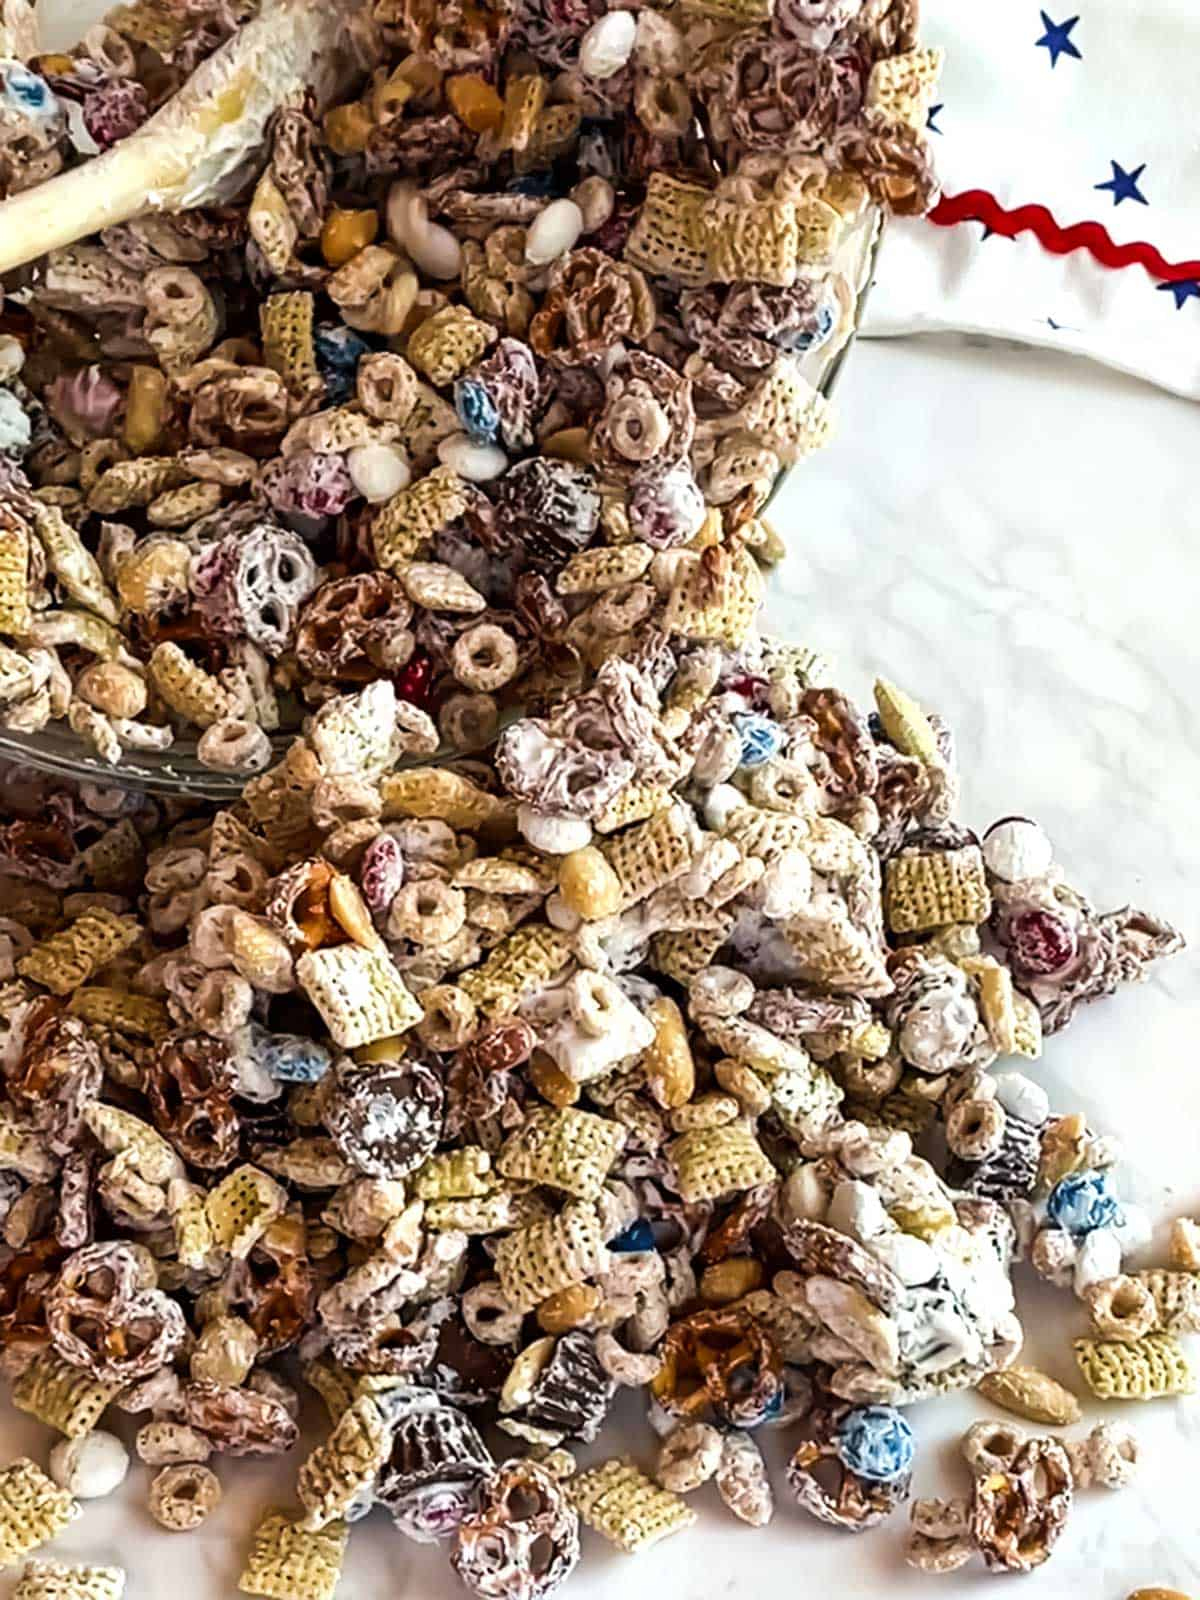 Dumping the coated snack mix onto parchment paper